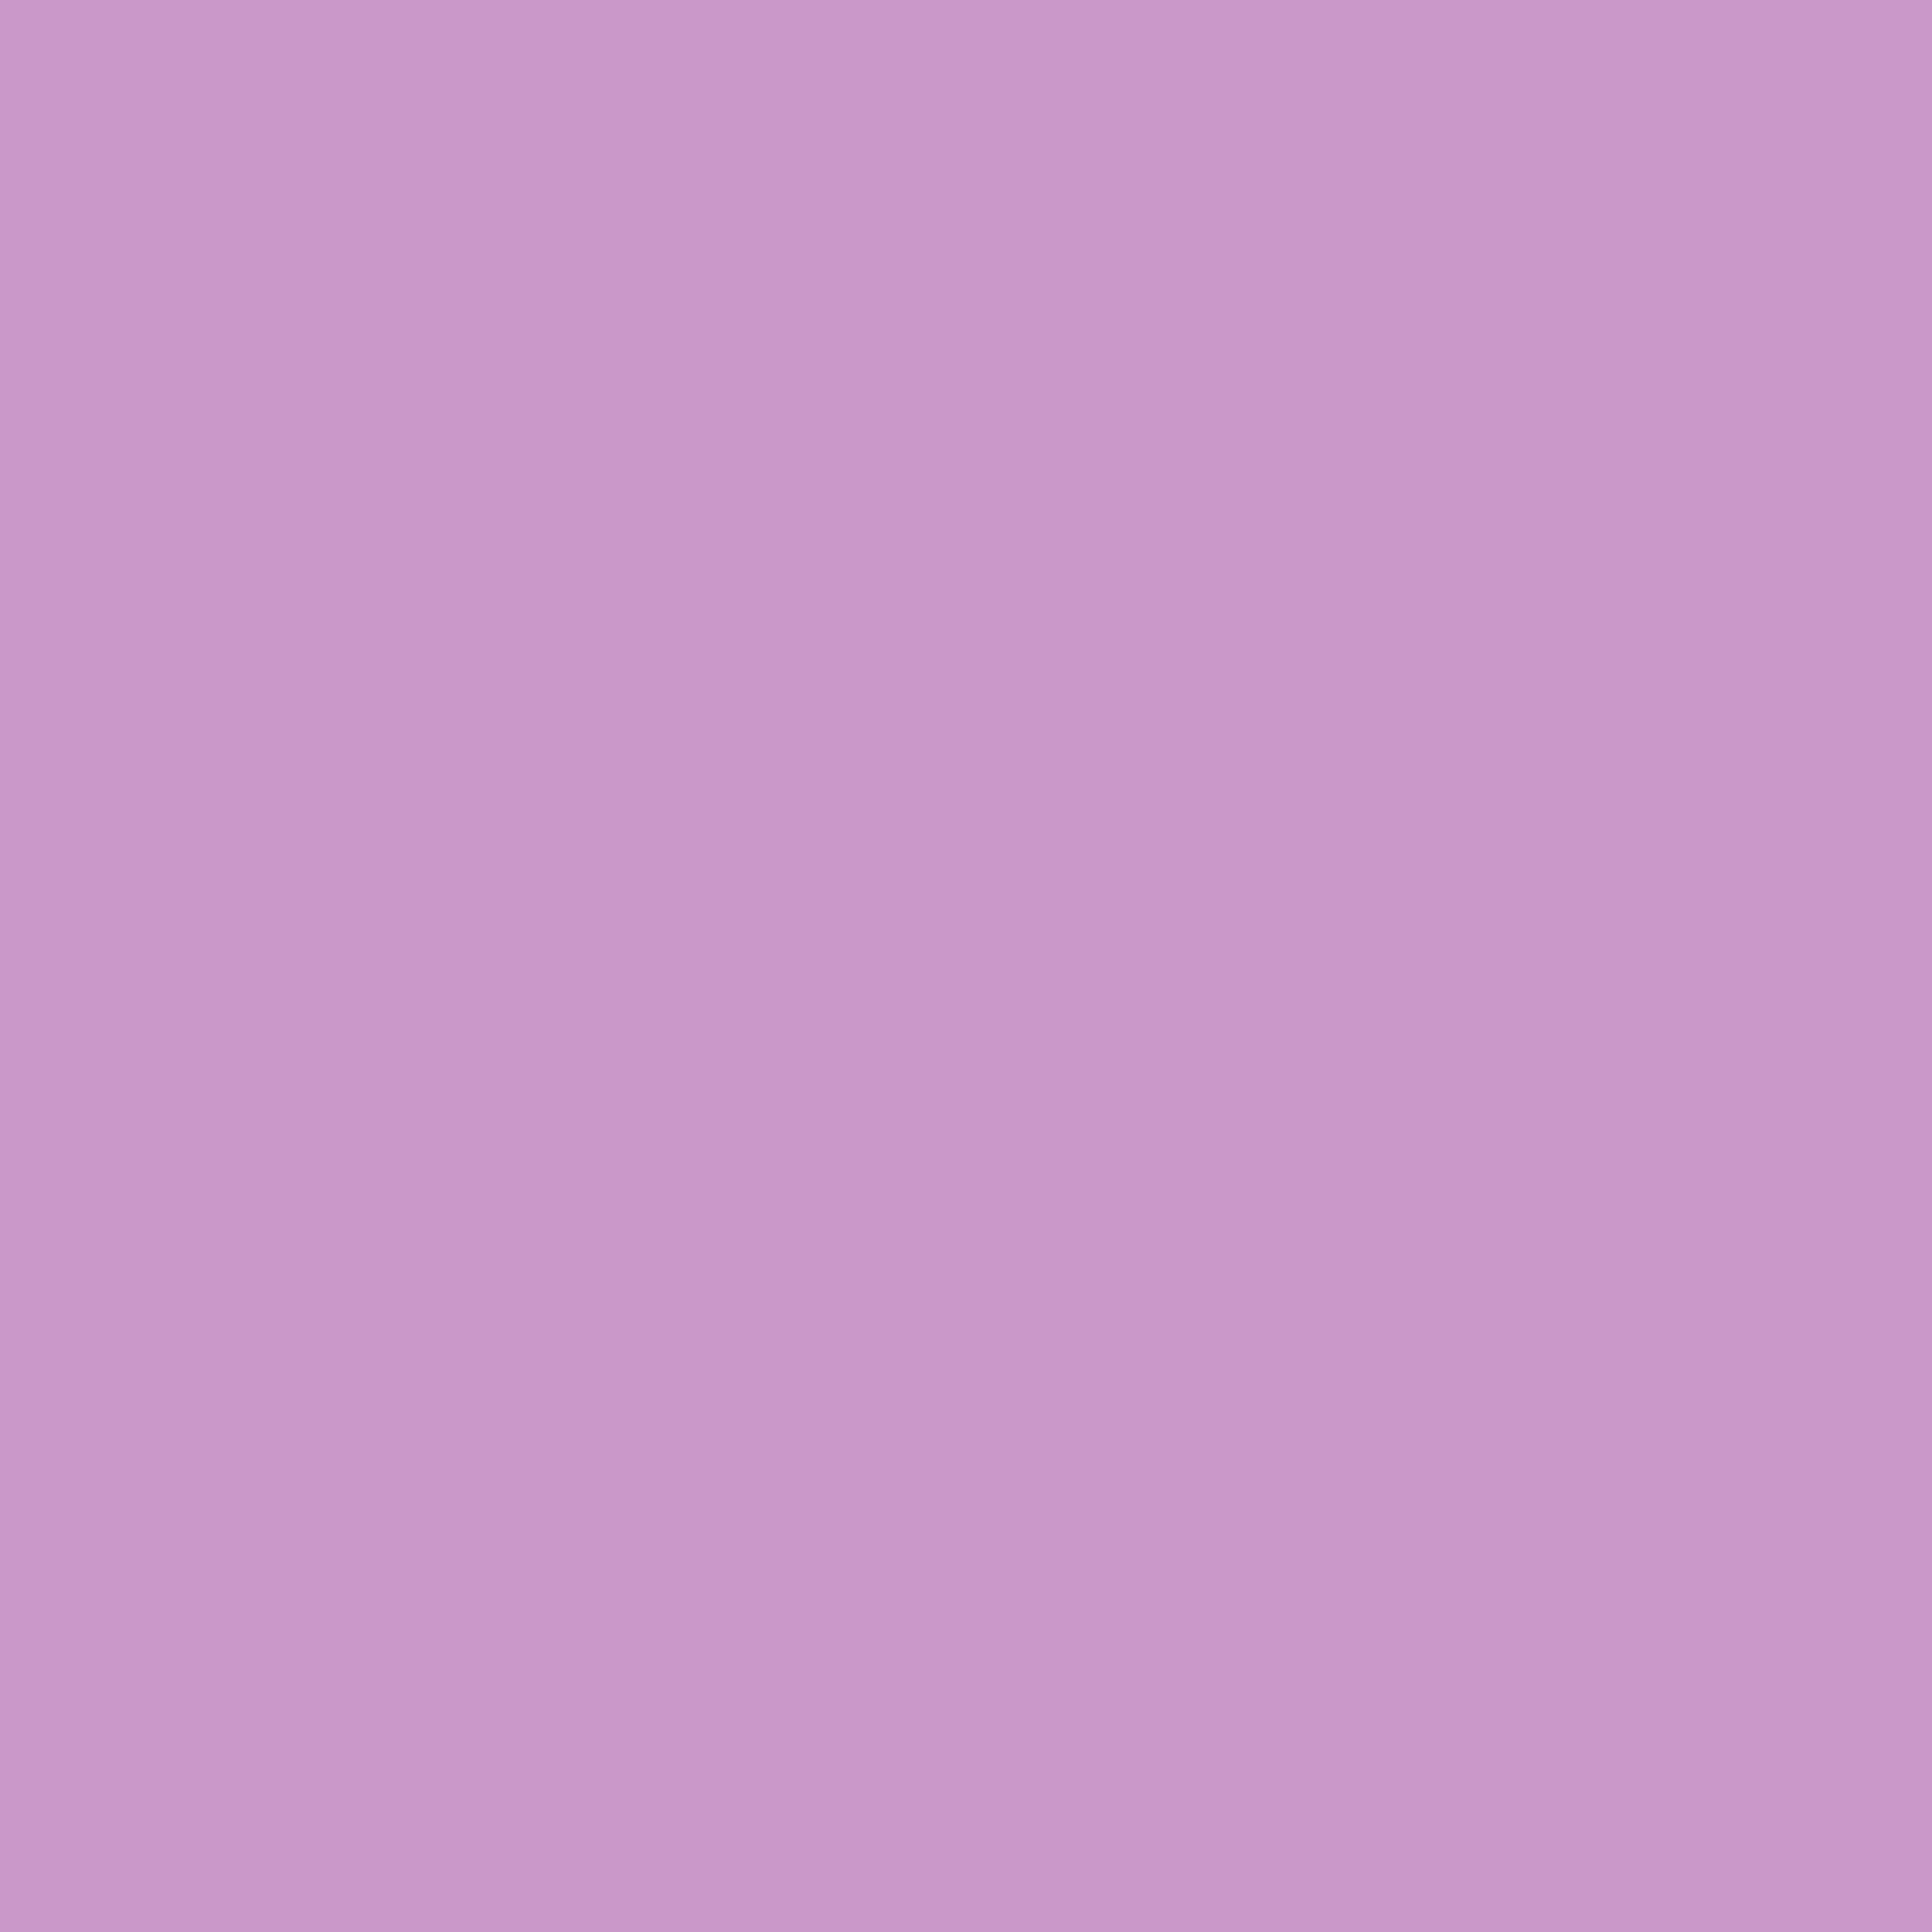 2732x2732 Pastel Violet Solid Color Background